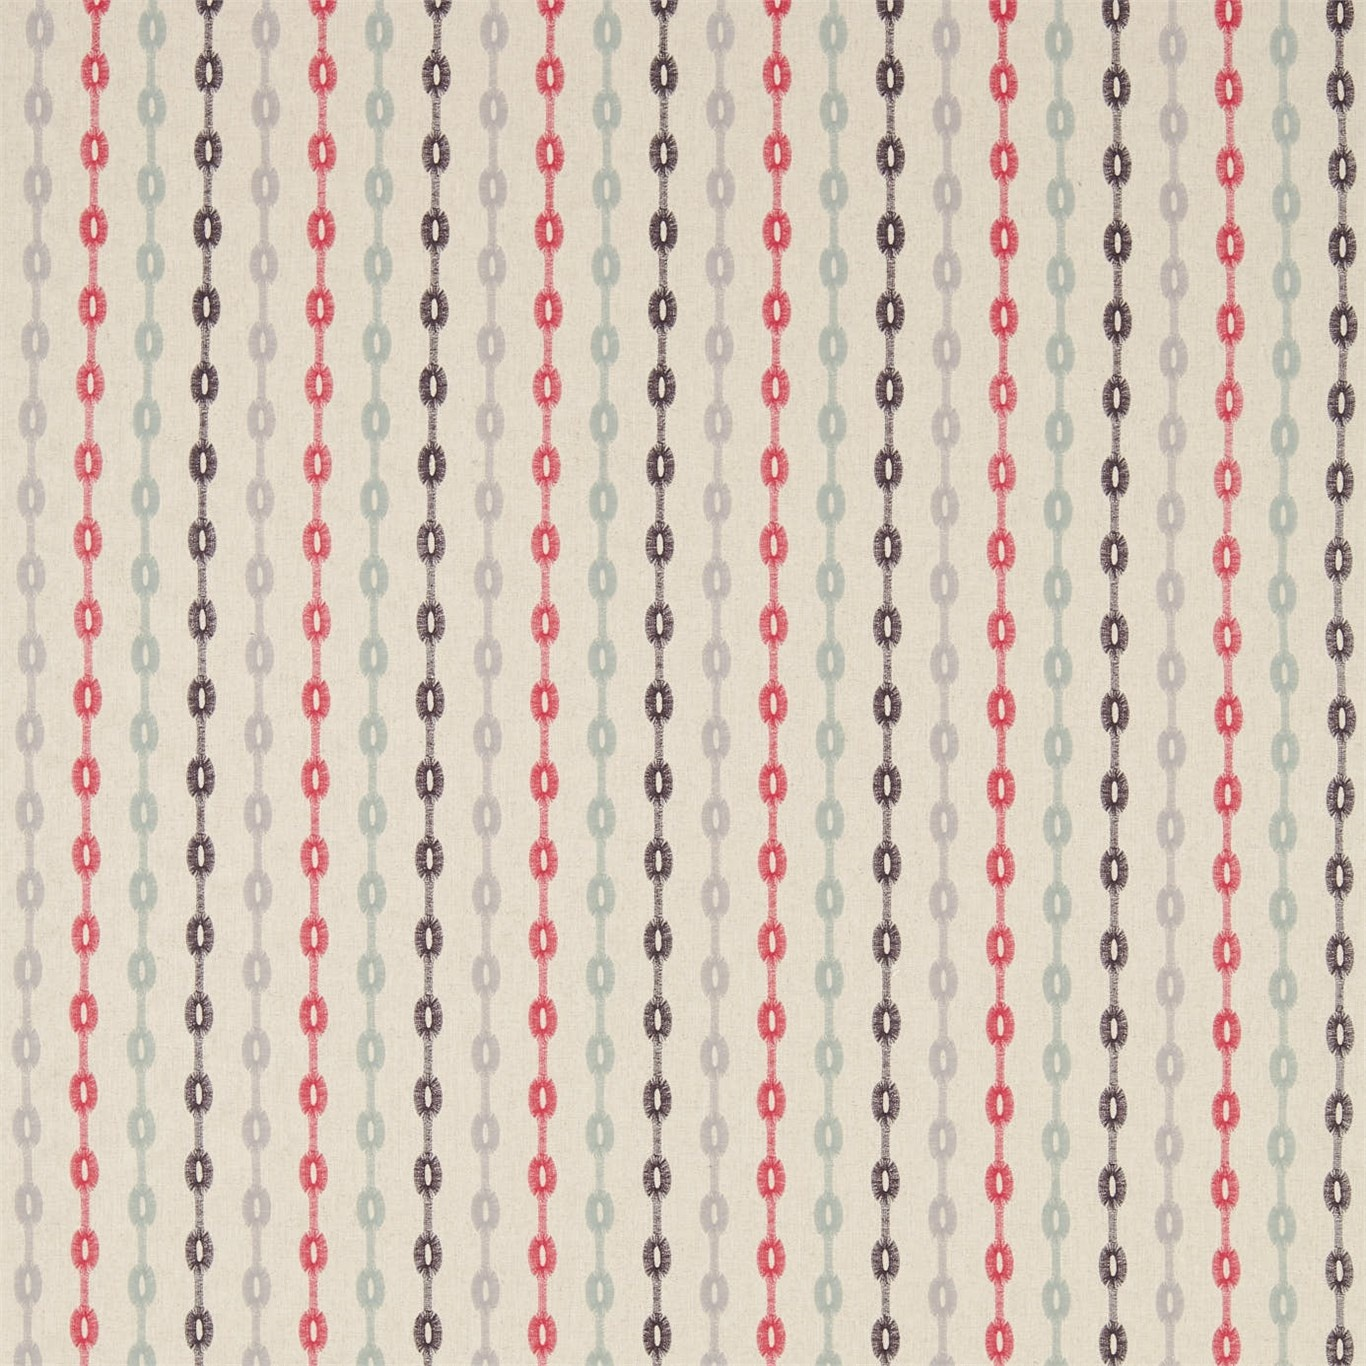 Image of Sanderson Home Shaker Stripe Coral/Celadon Curtain Fabric 235891